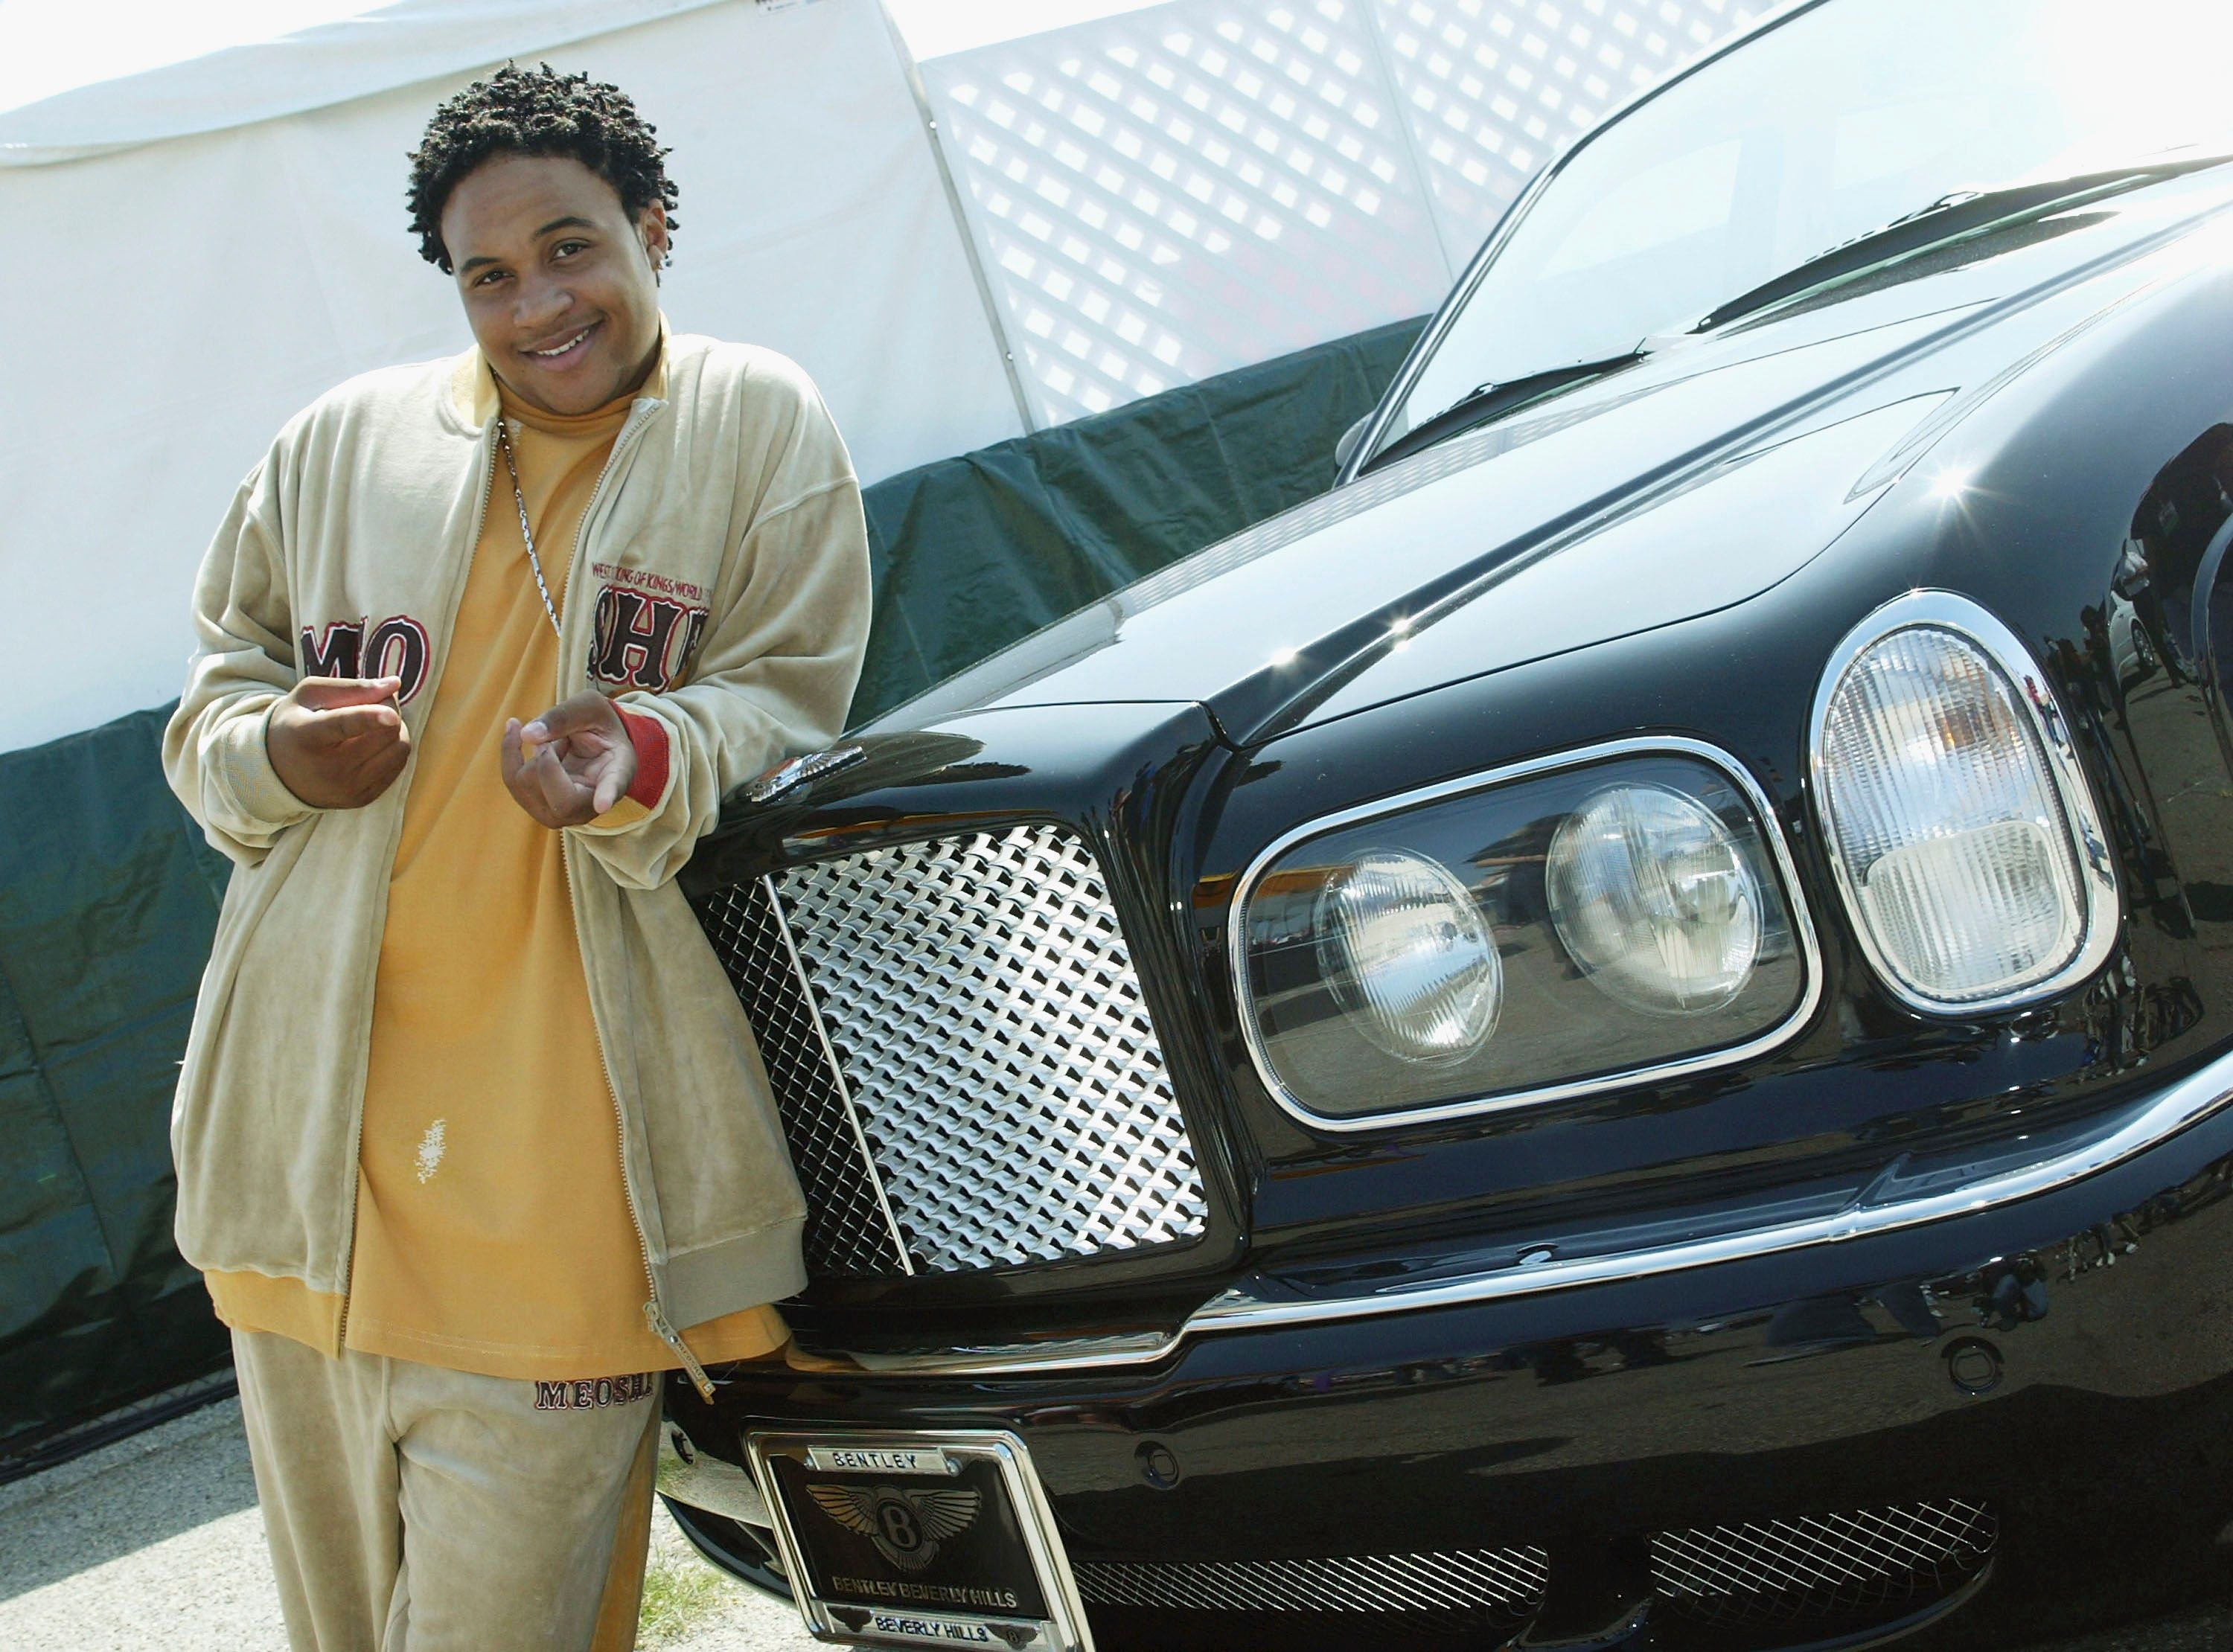 """Orlando Brown at Shaquille O'Neal's children's benefit """"Shaqtacular VIII"""" in Santa Monica in 2003 